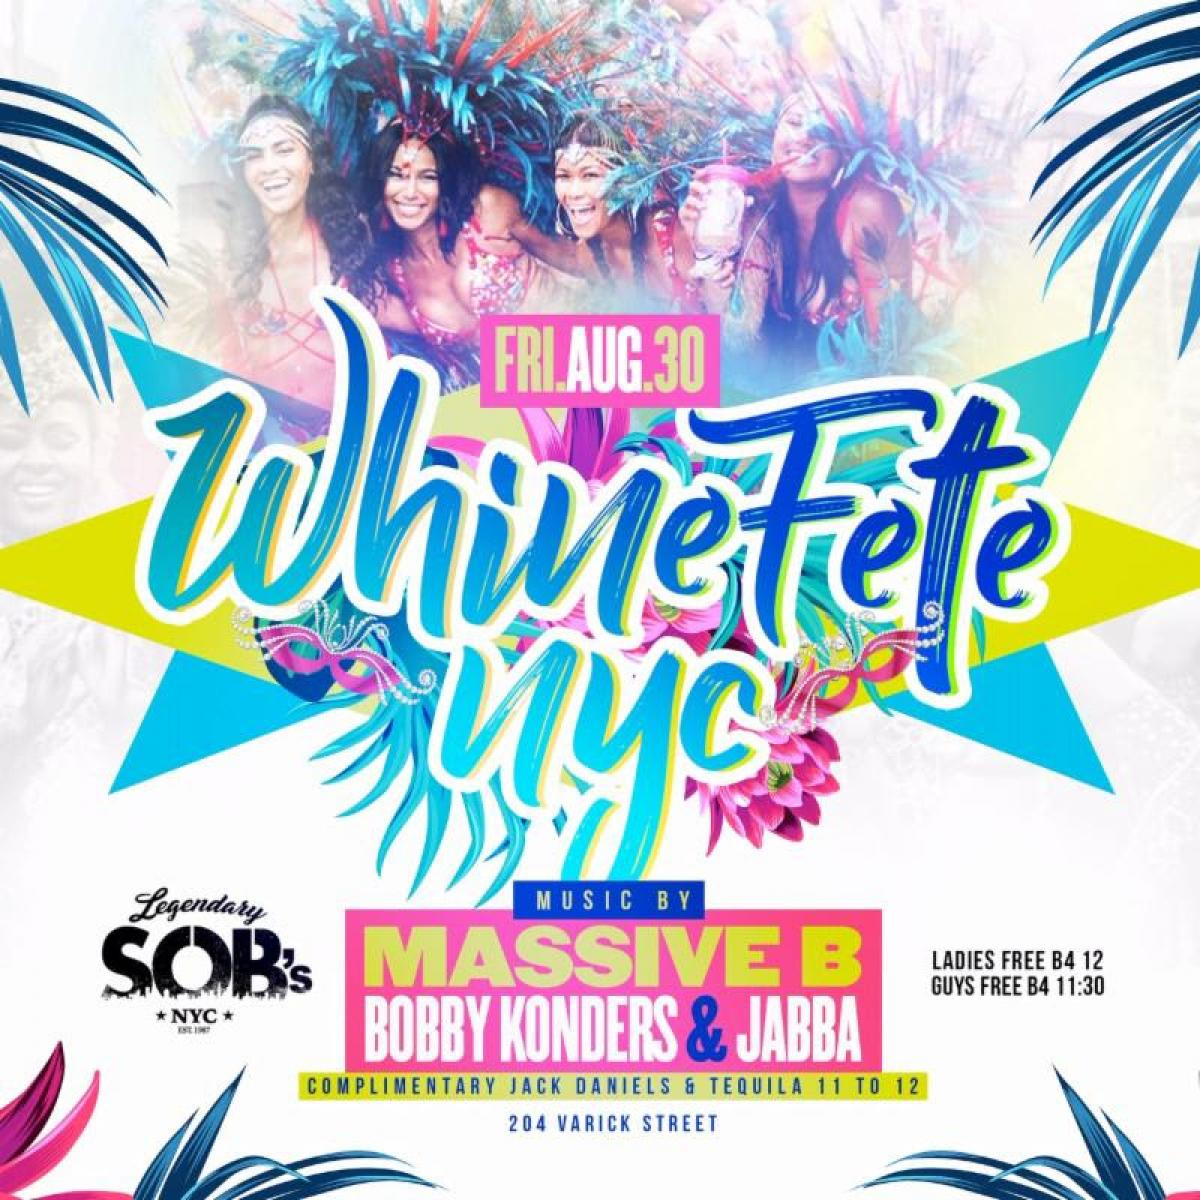 Whinefete flyer or graphic.